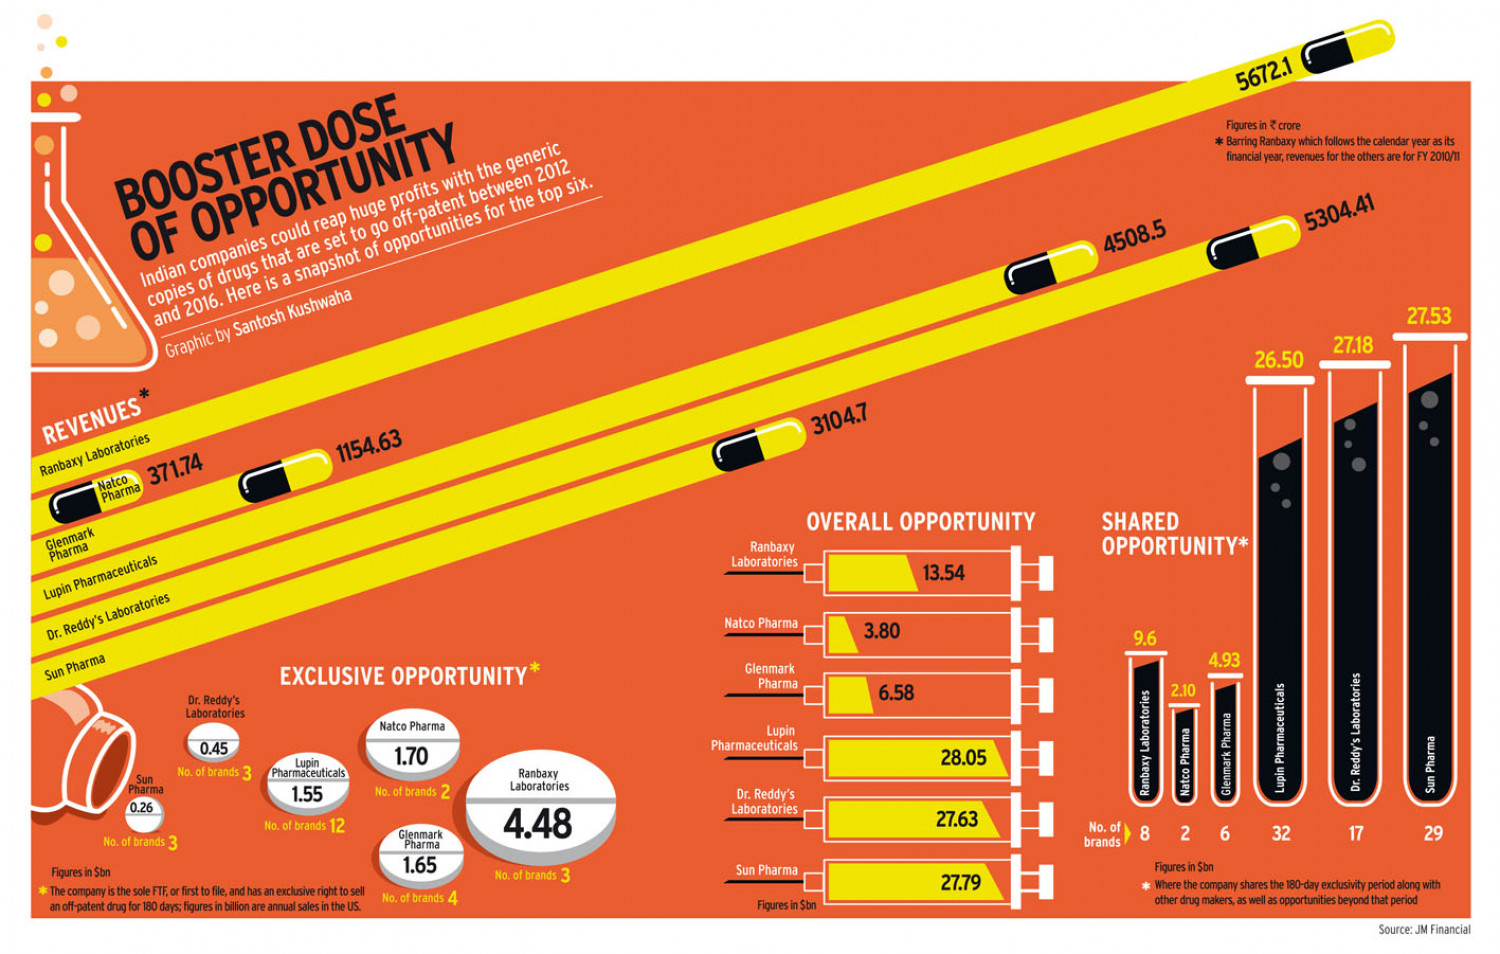 BOOSTER DOSE OF OPPORTUNITY Infographic